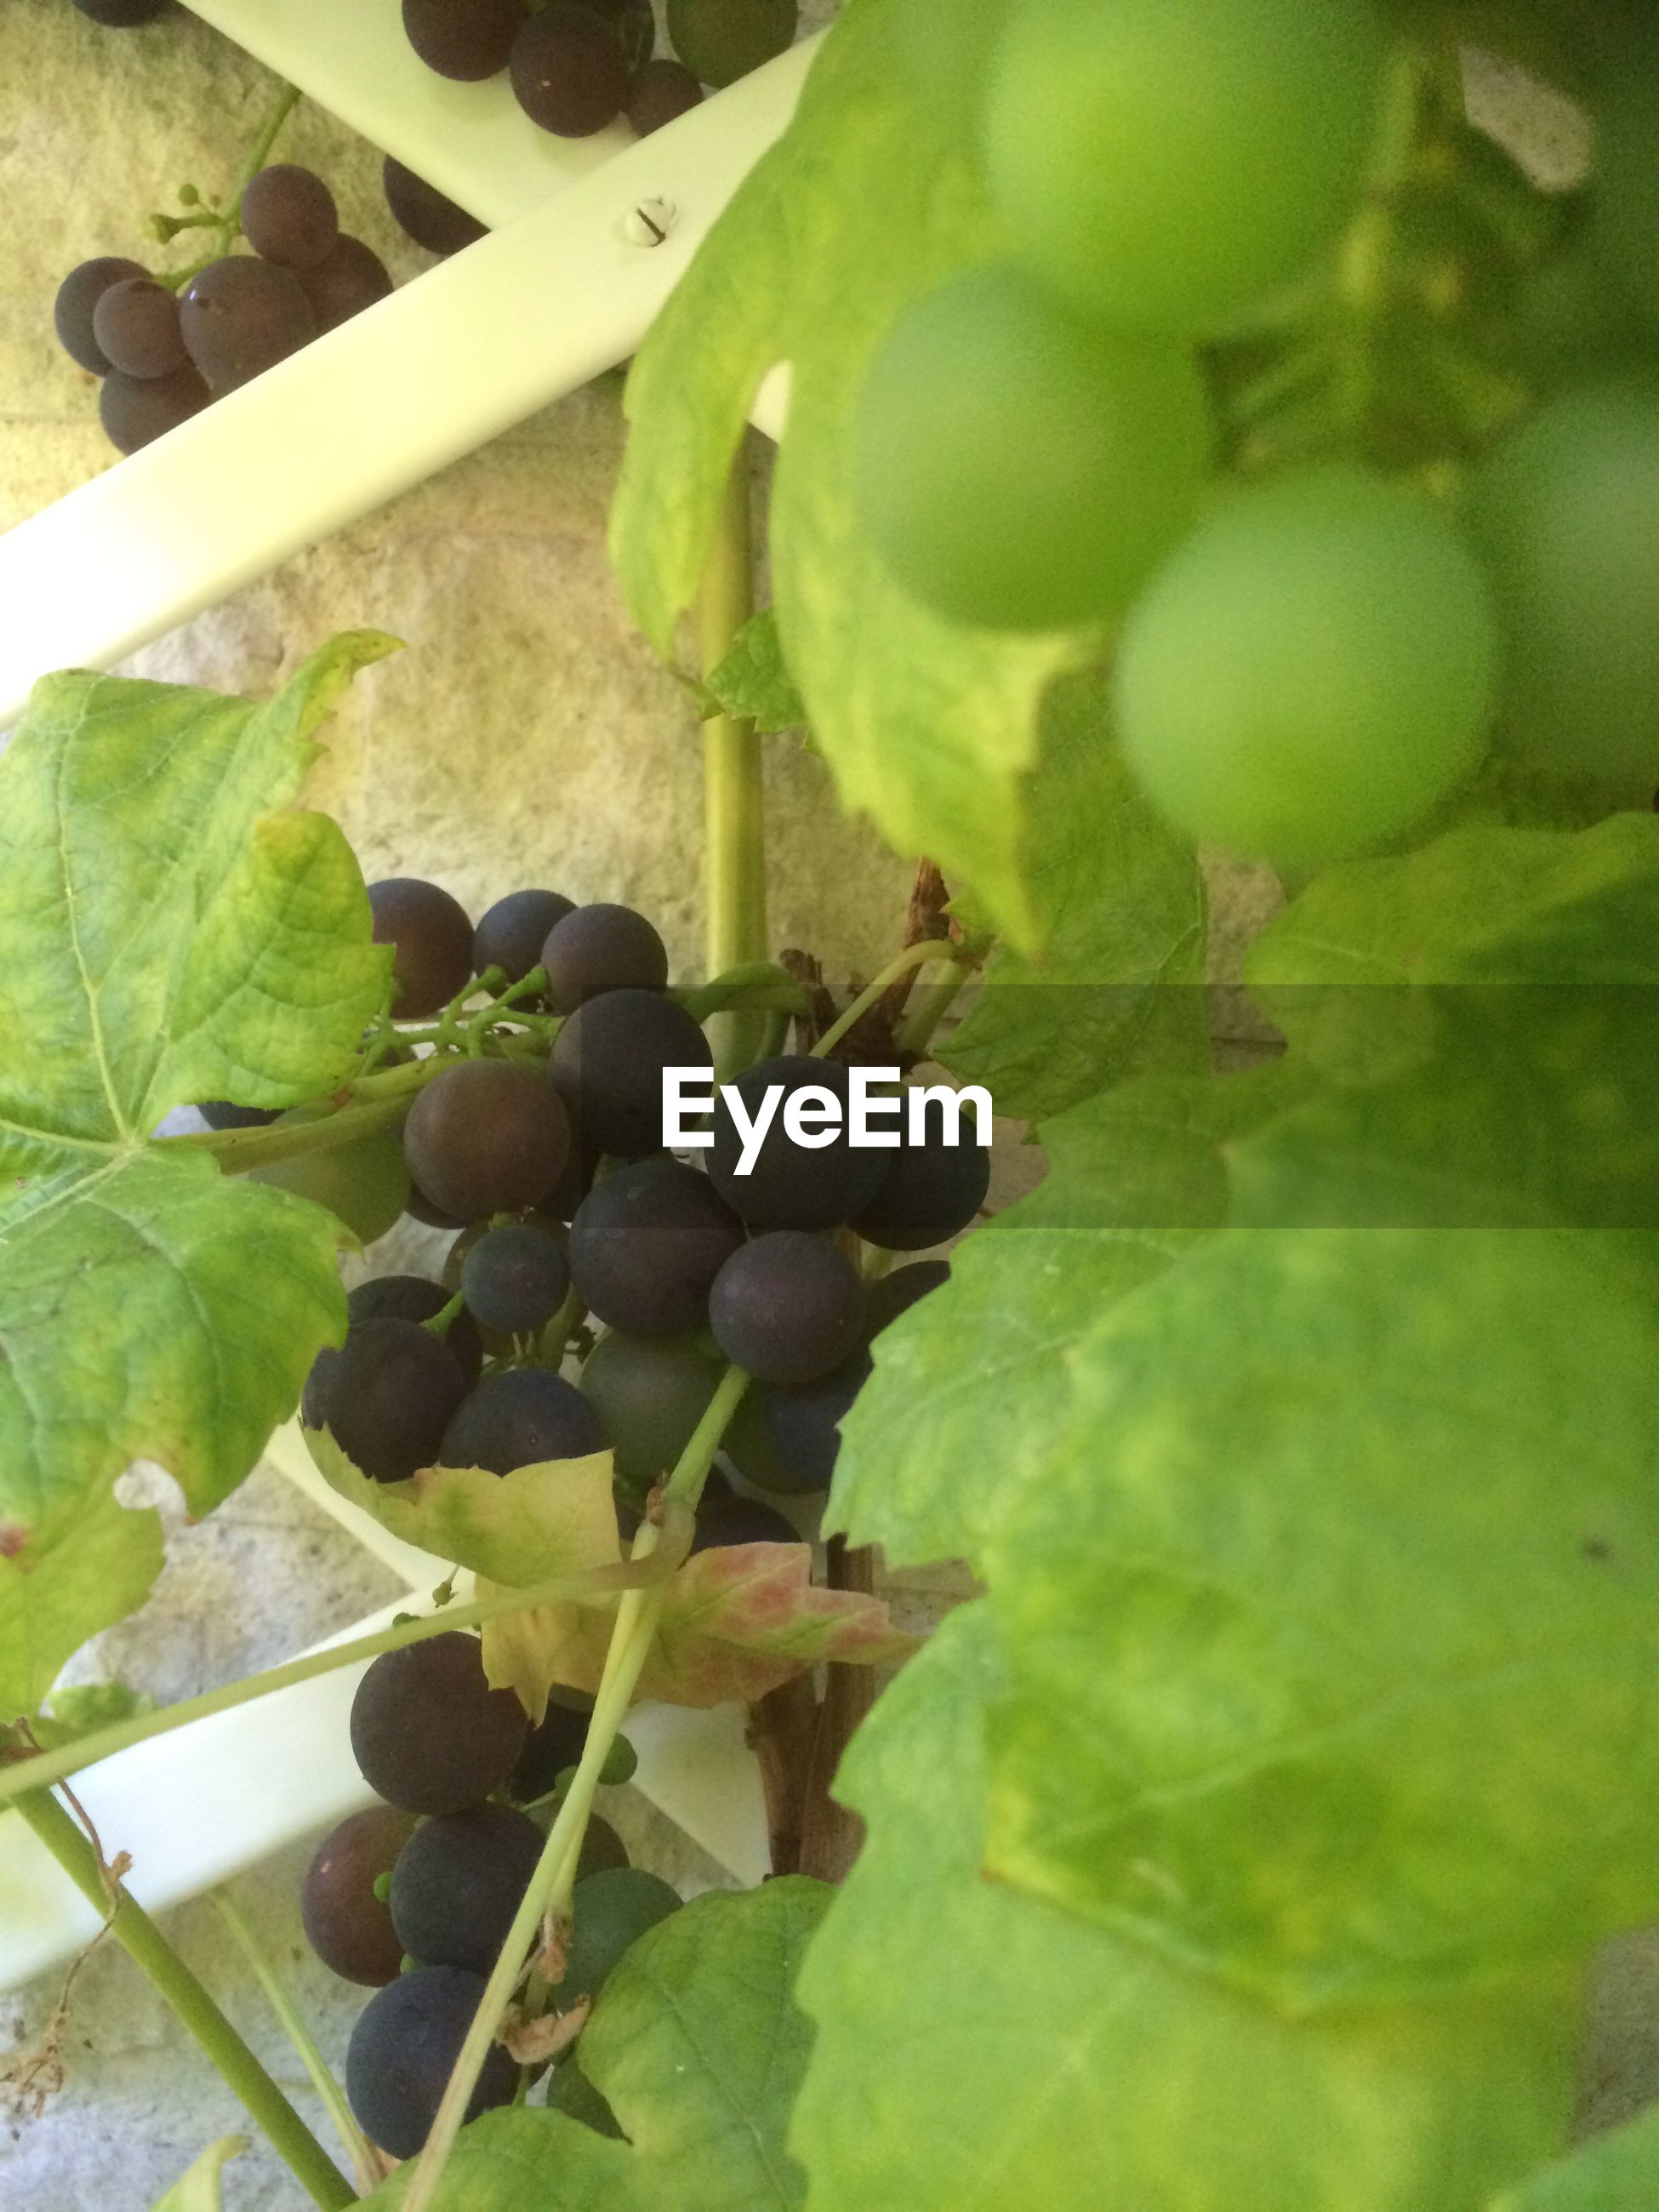 fruit, food and drink, food, close-up, freshness, grape, healthy eating, leaf, growth, green color, selective focus, agriculture, vine, vineyard, nature, day, bunch, focus on foreground, rural scene